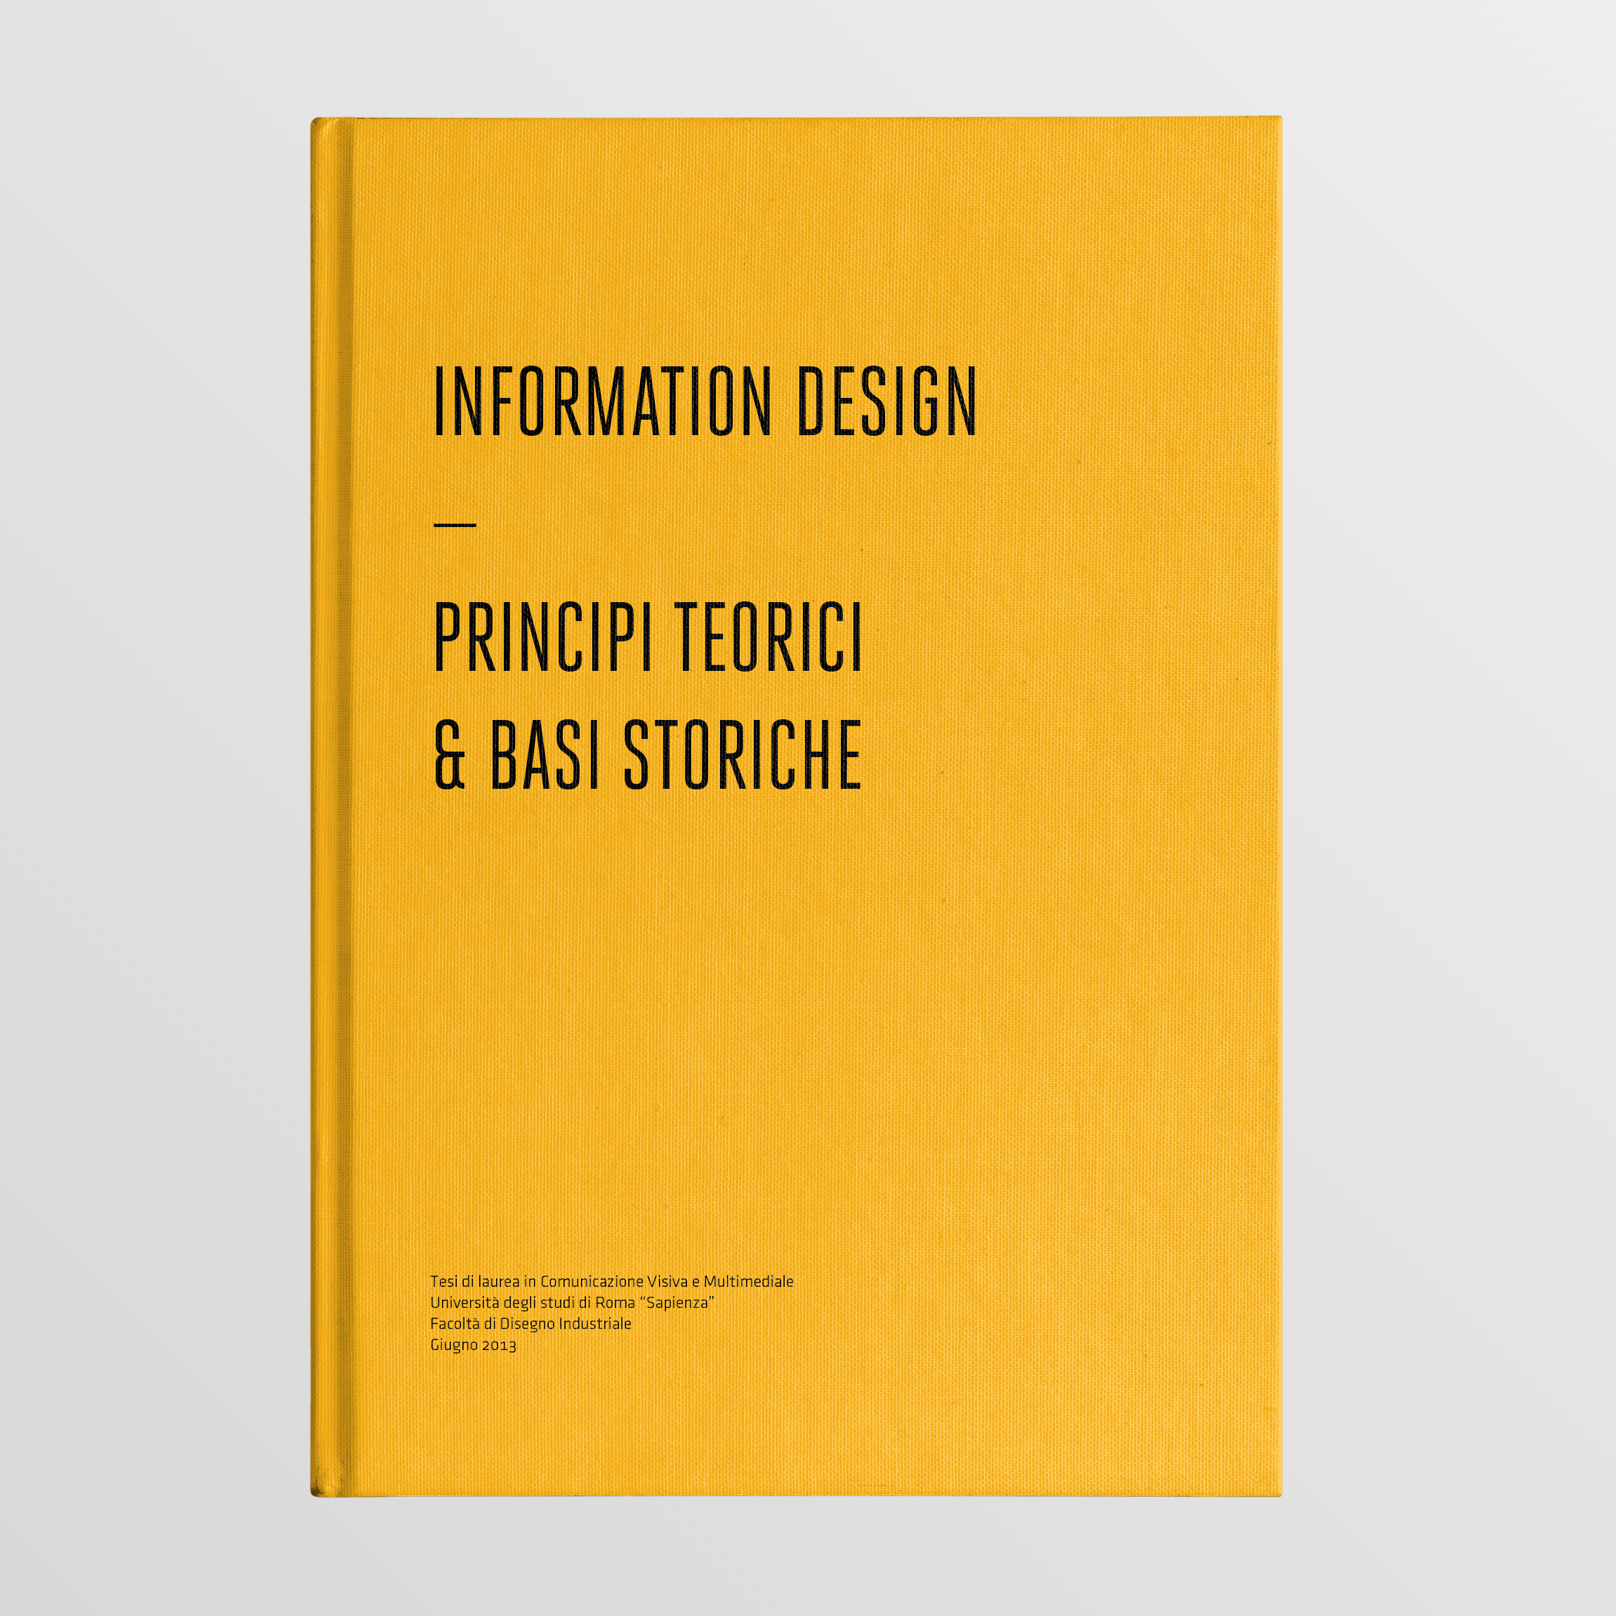 ID2 | About information design